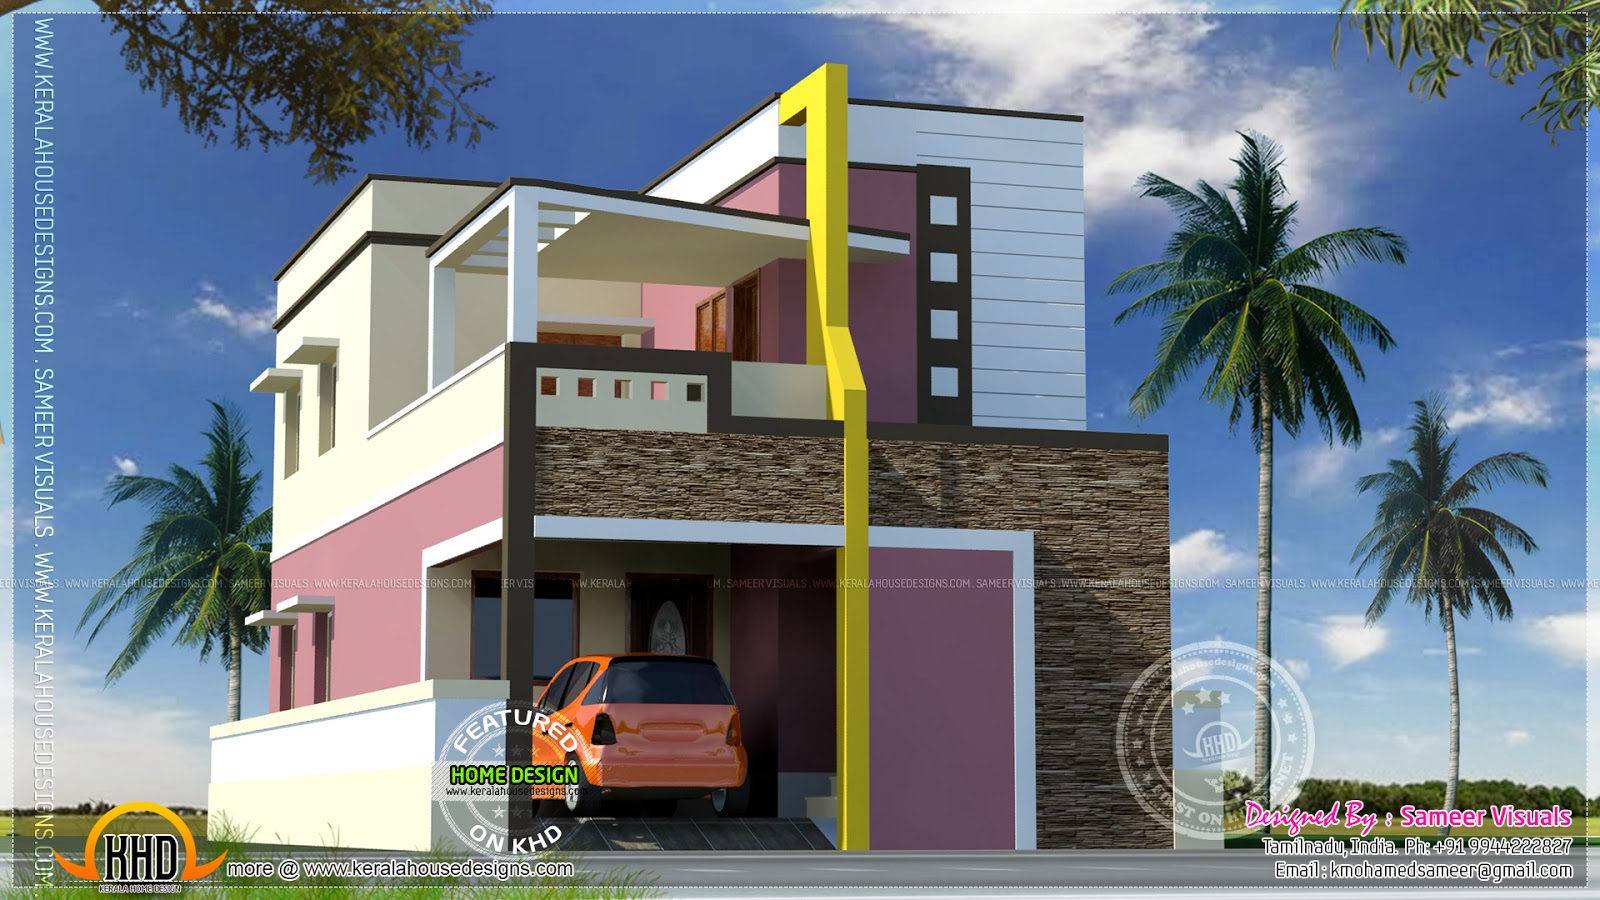 Modern indian home design small modern house indian Indian small house design pictures